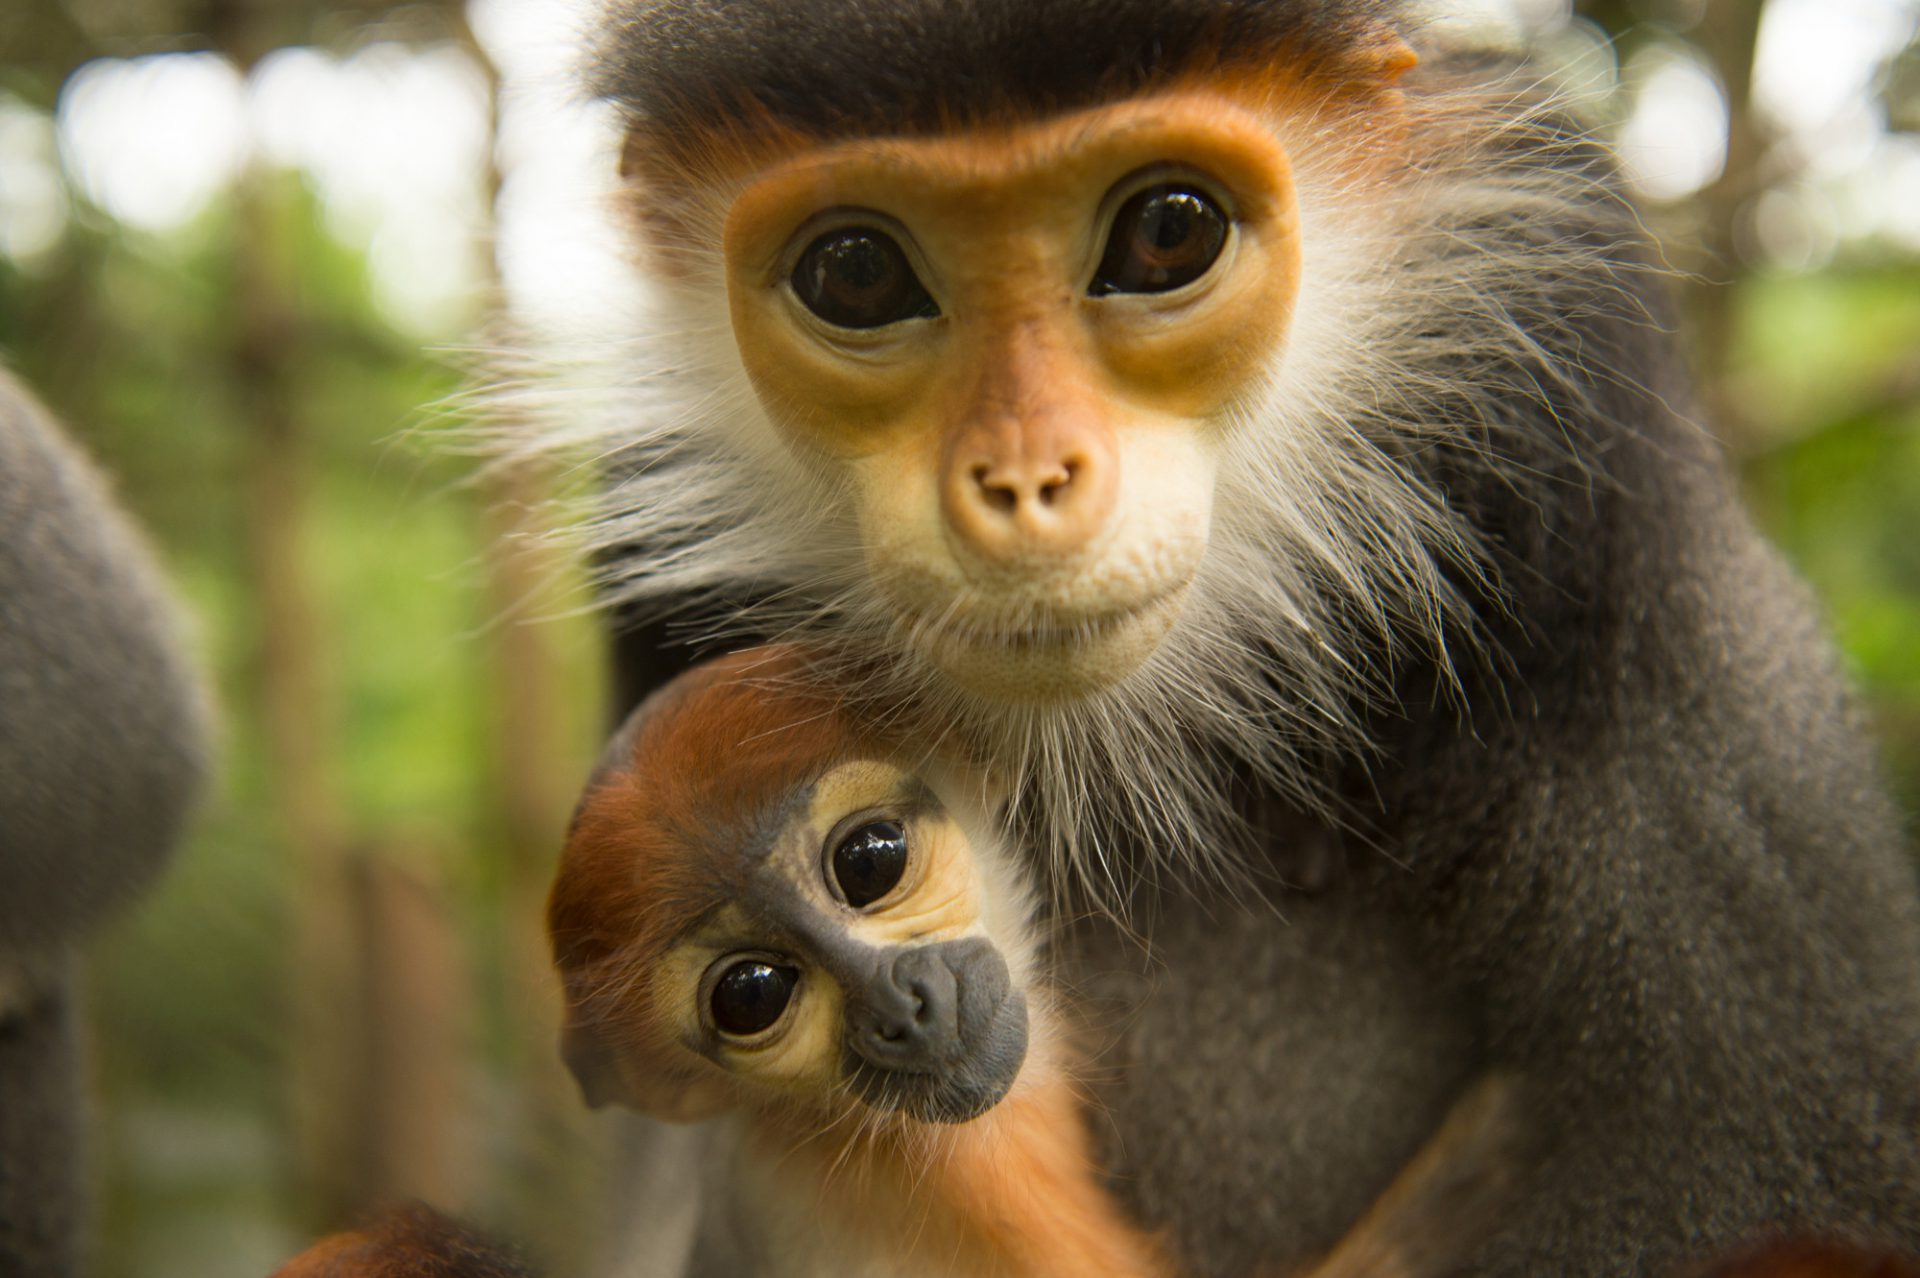 Picture of endangered (IUCN) and federally endangered red-shanked douc langurs (Pygathrix nemaeus) at the Endangered Primate Rescue Center in Cuc Phuong National Park, Vietnam.